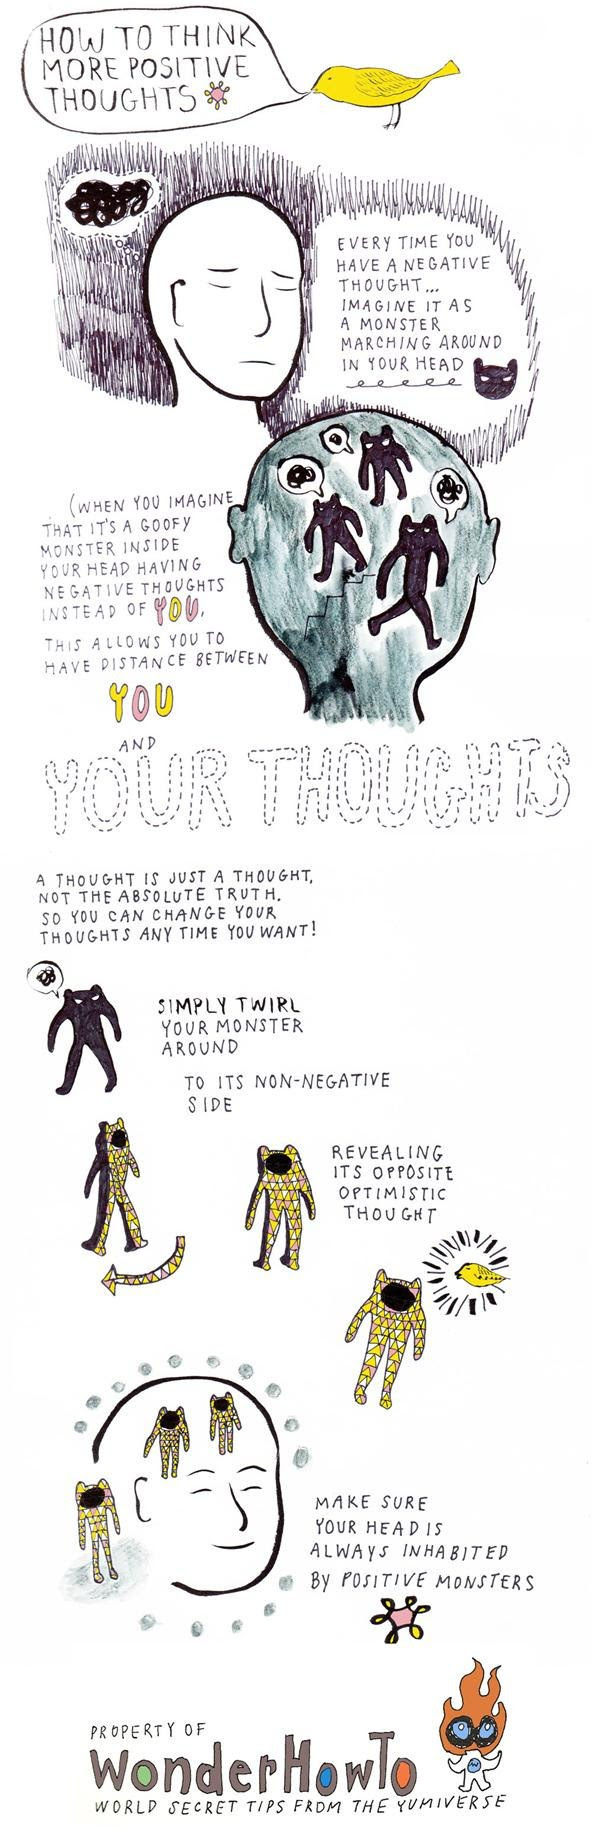 How To Change Negative Thoughts Into Positive Ones « The ...